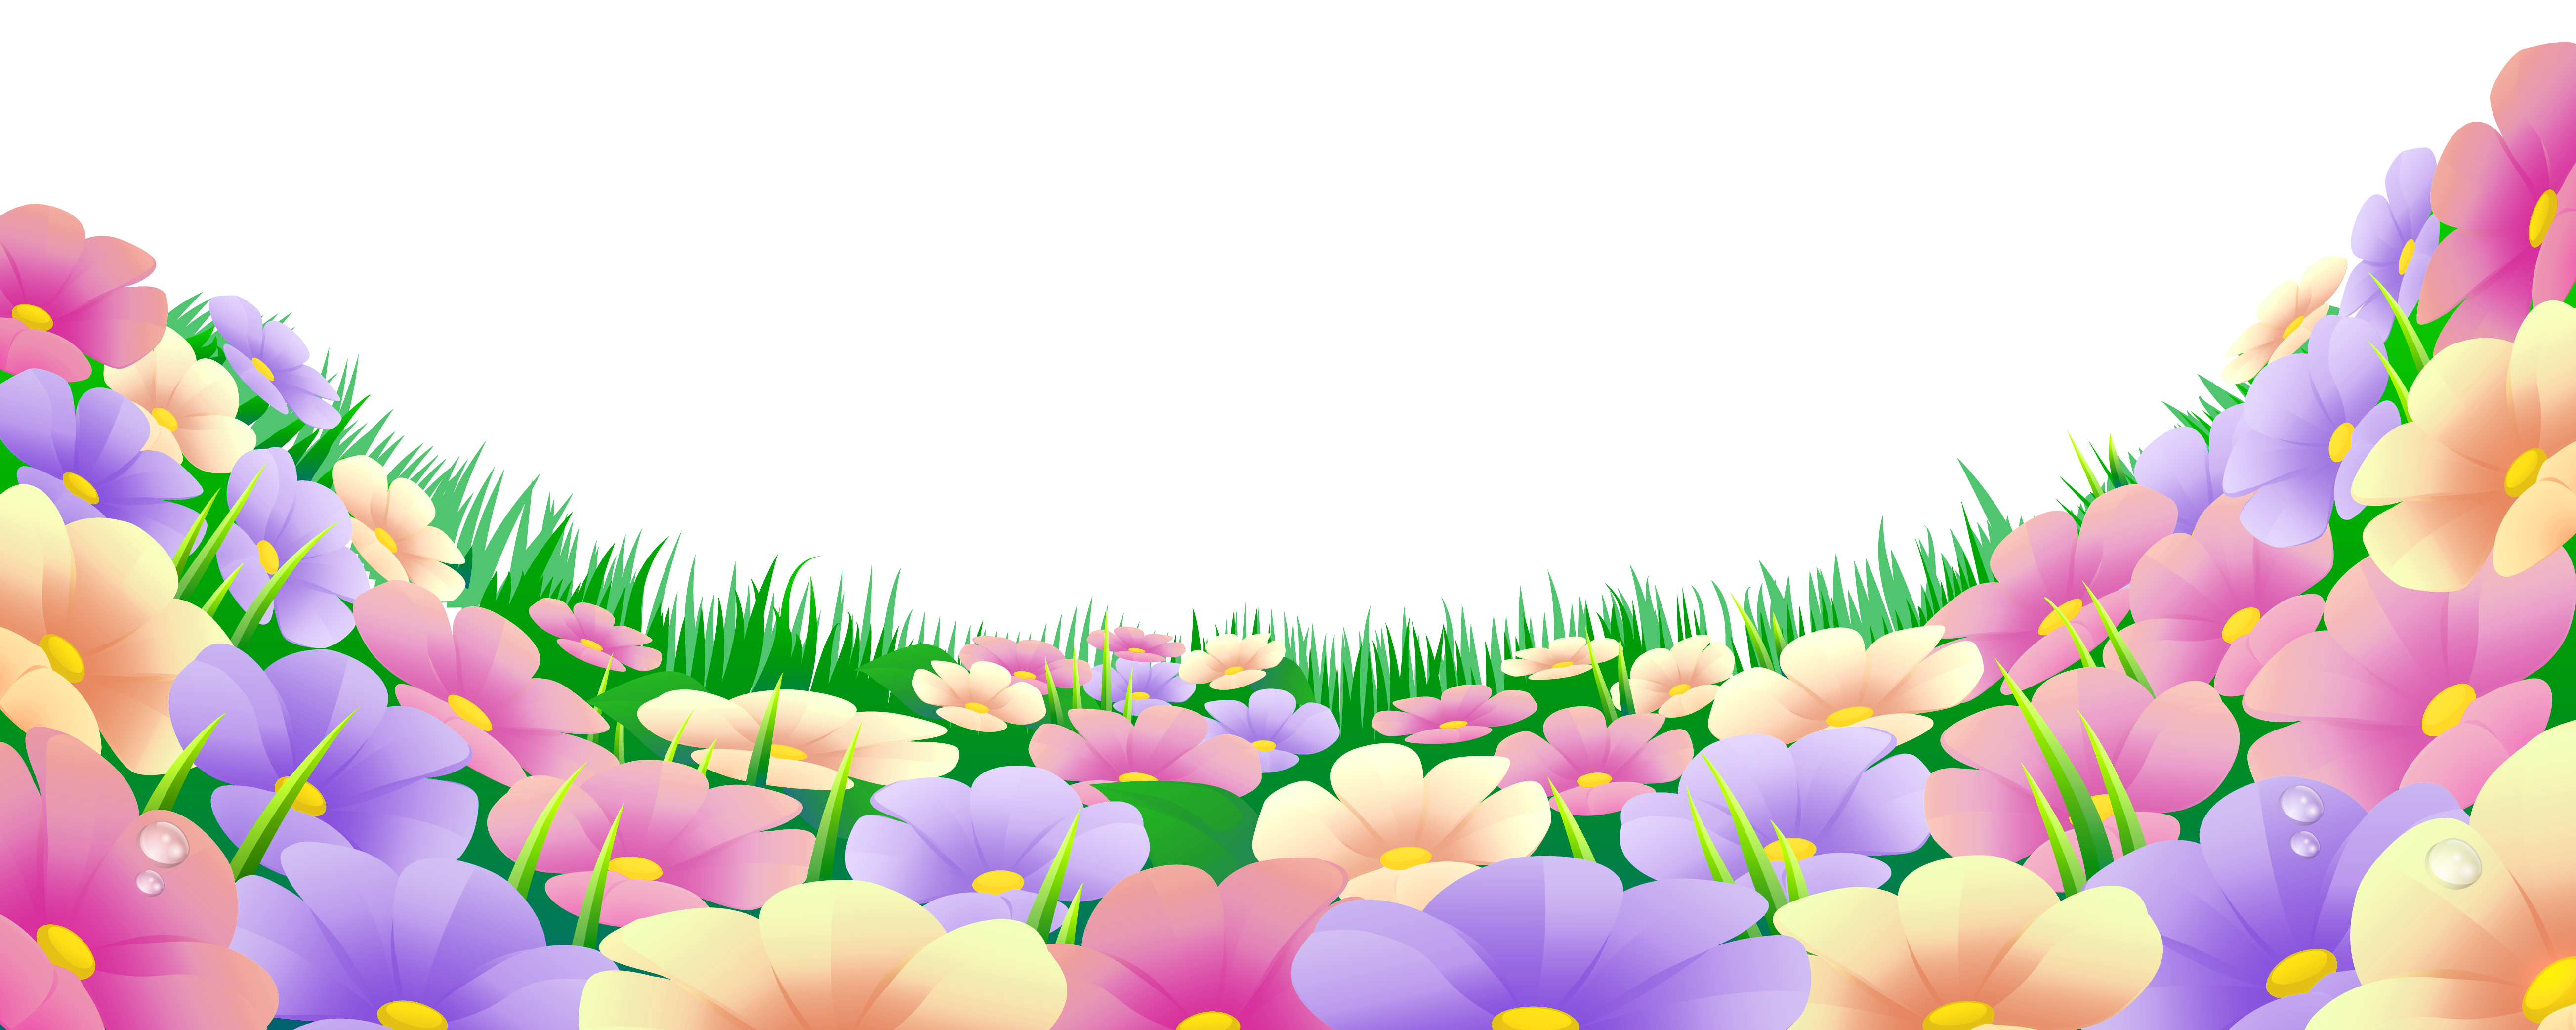 picture royalty free stock Beautiful clipart. Grass with flowers png